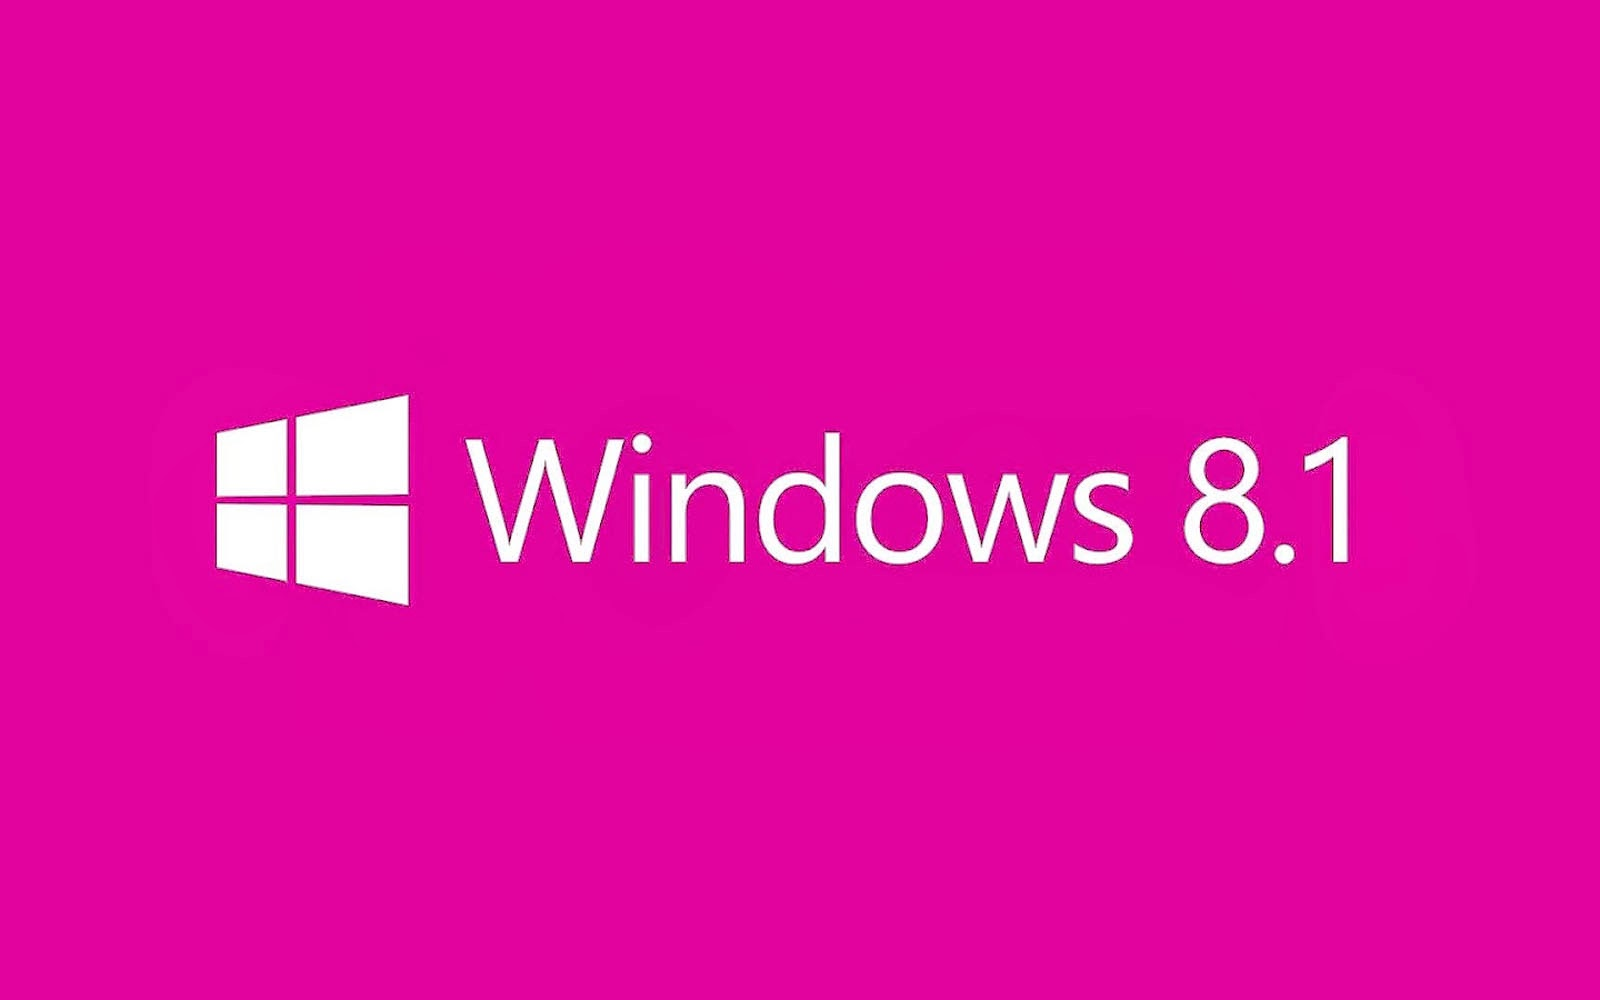 Windows 8 1 Wallpapers Pictures Images